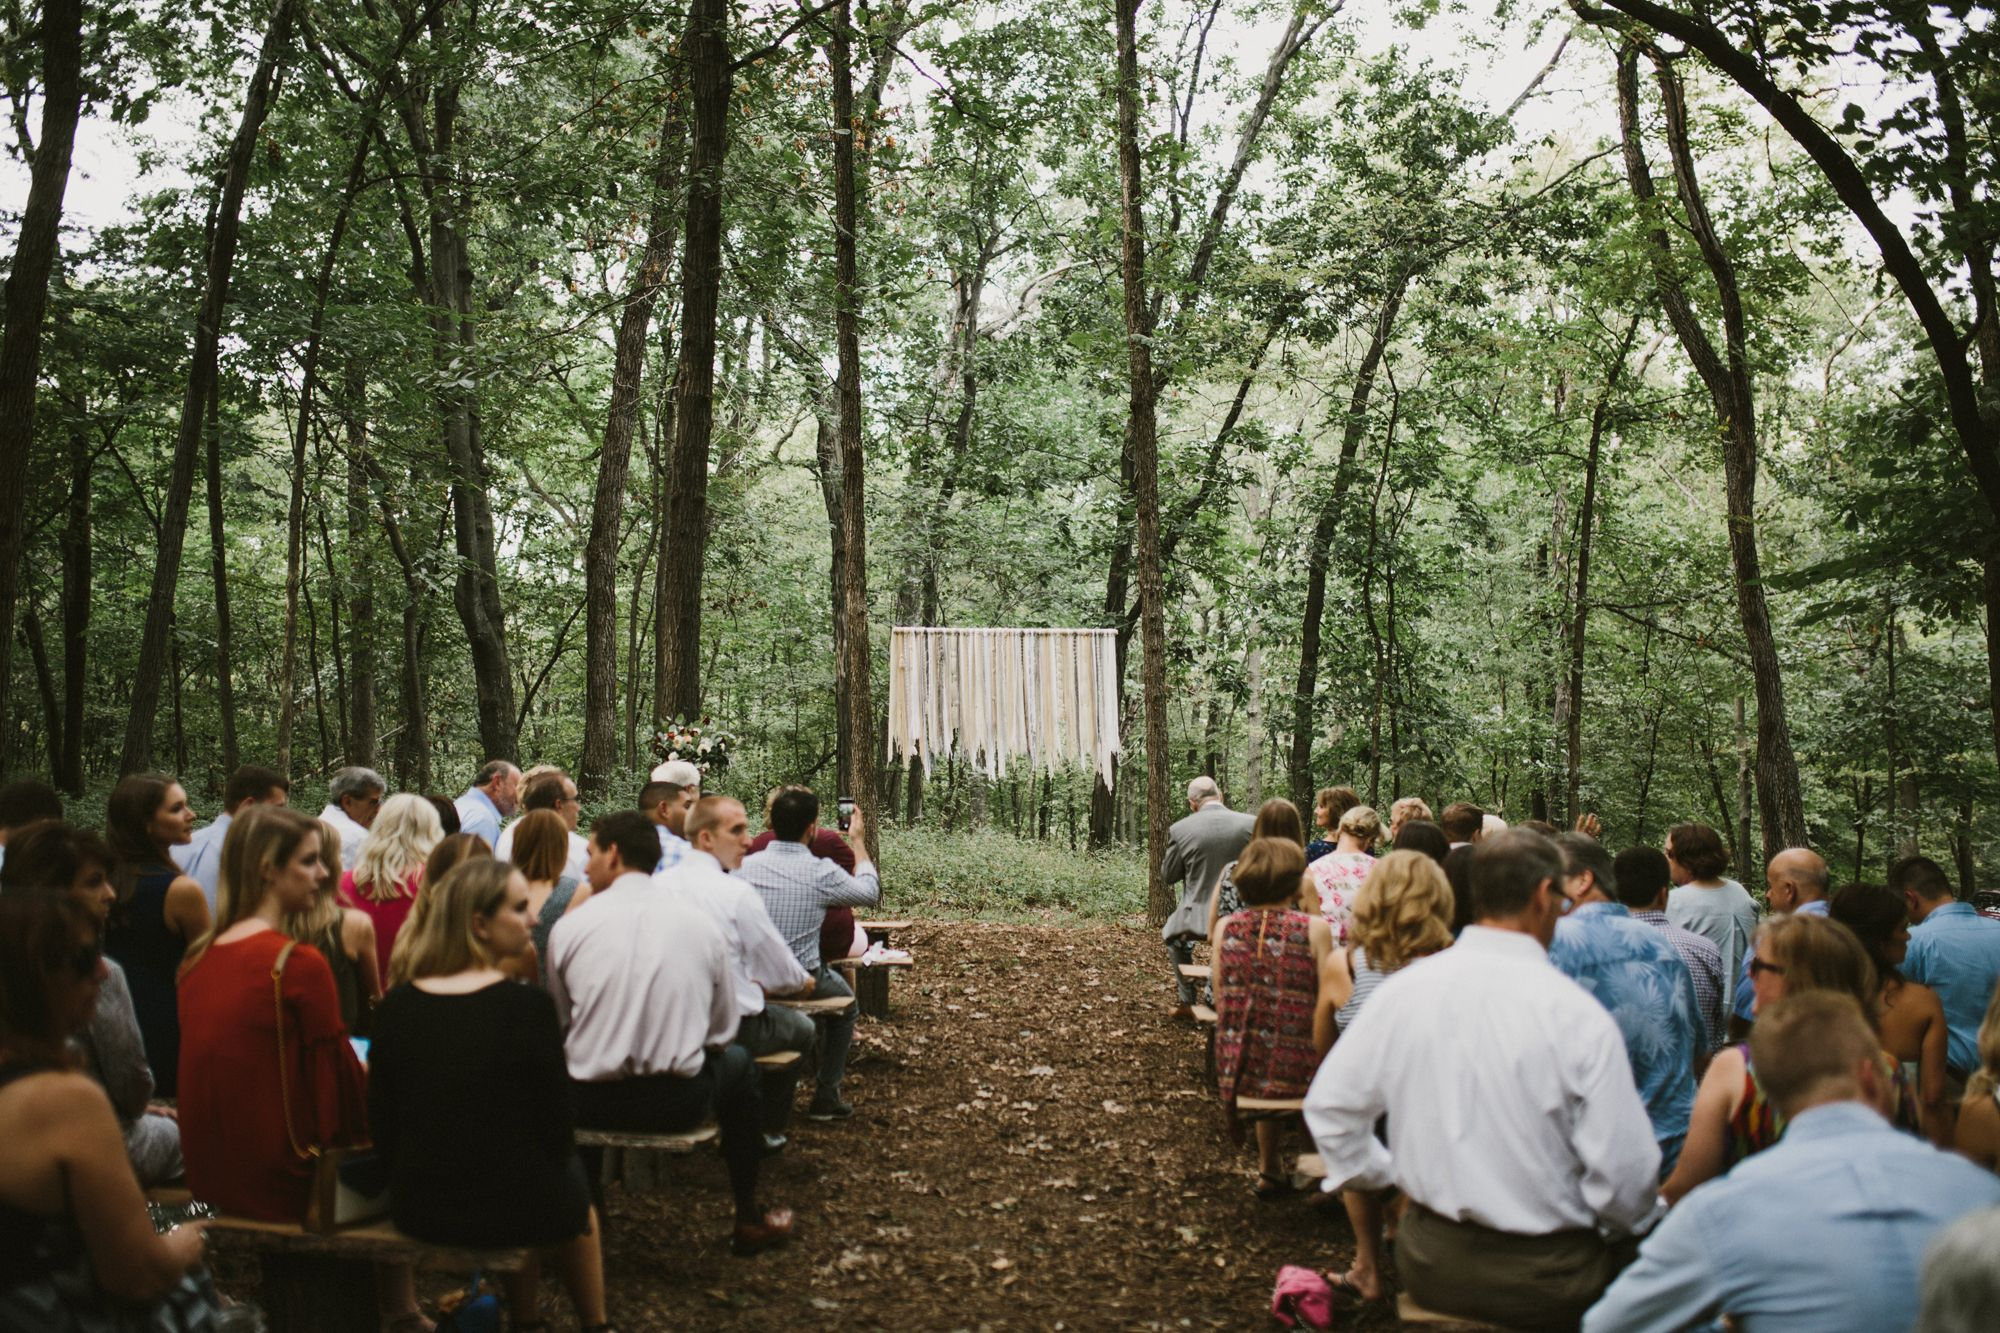 diy backyard wedding in the woods ceremony space wooden benches